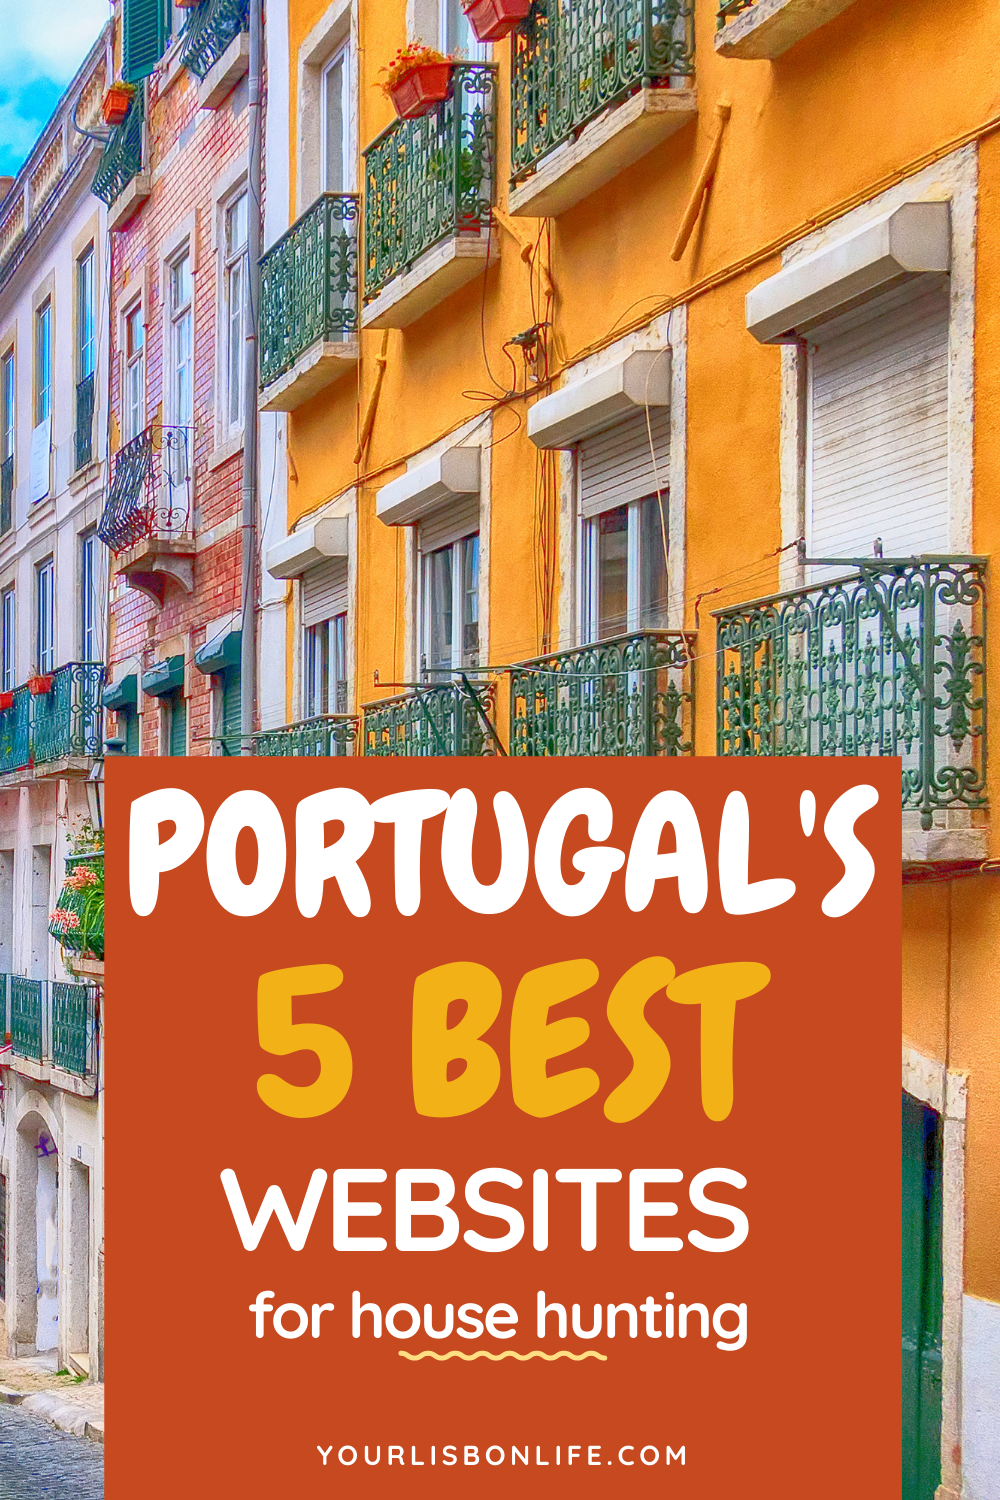 Portugal's Best Websites for House Hunting Looking